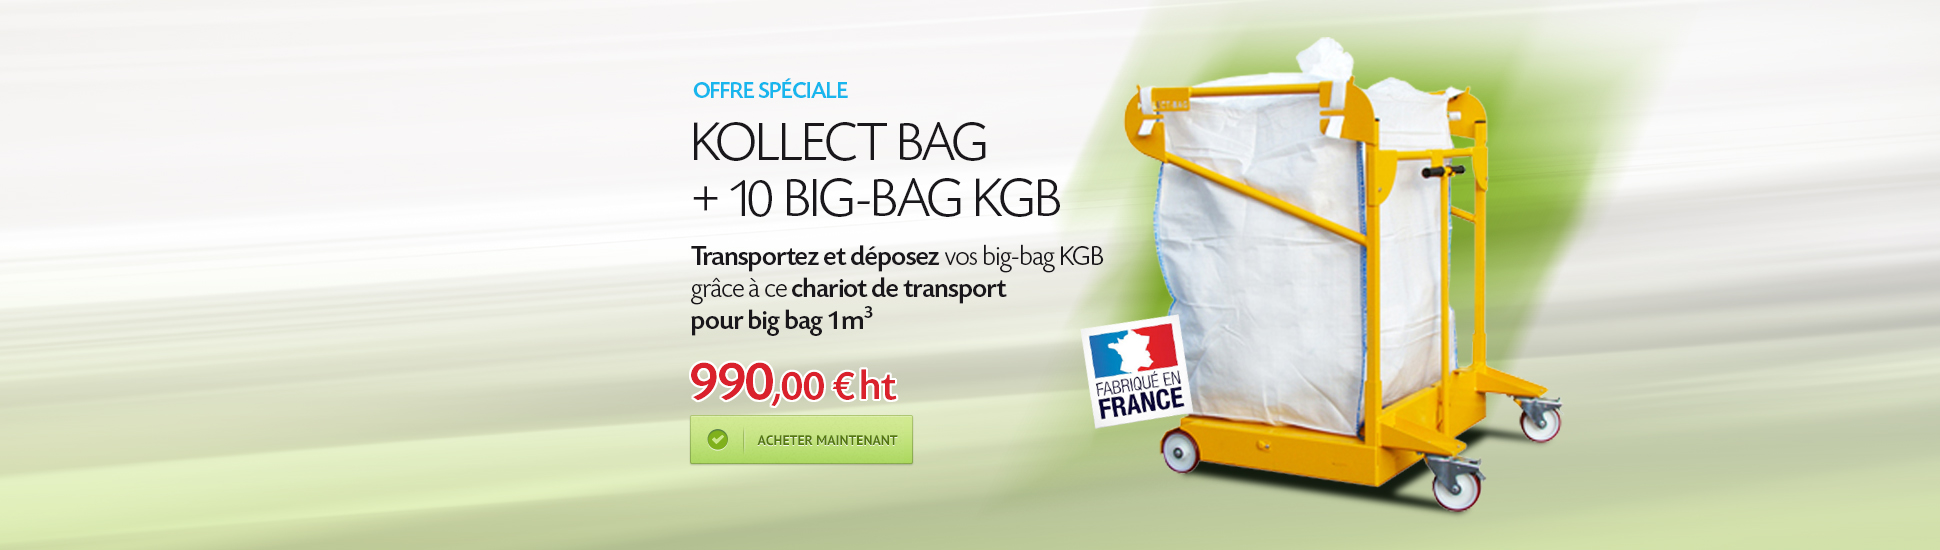 Kollect Bag + 10 Big-Bag KGB